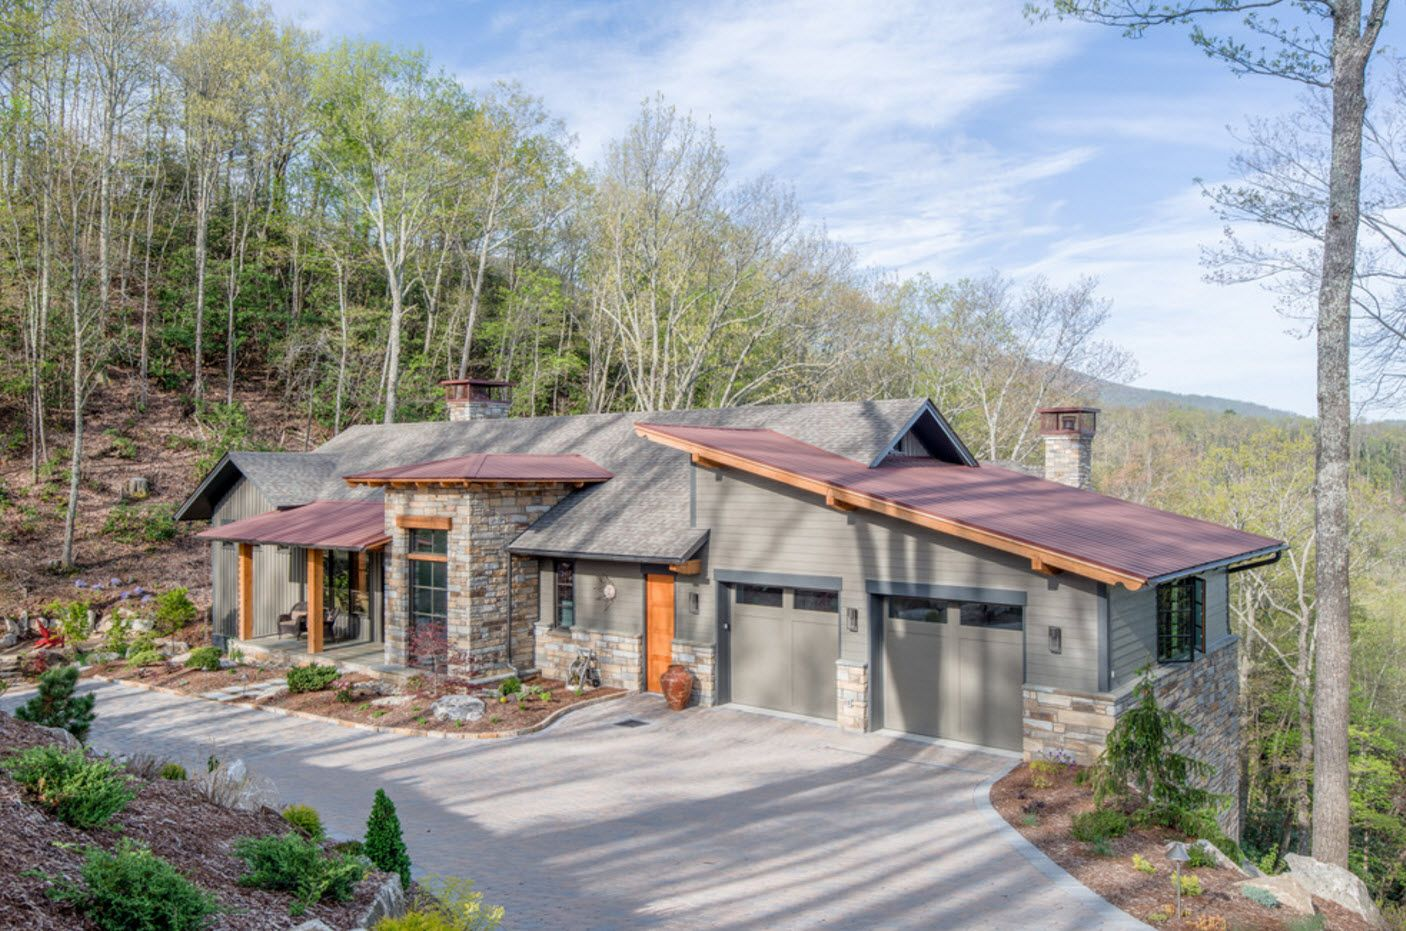 Saw-tooth and gabled roof of gray one-storey cozy cottage